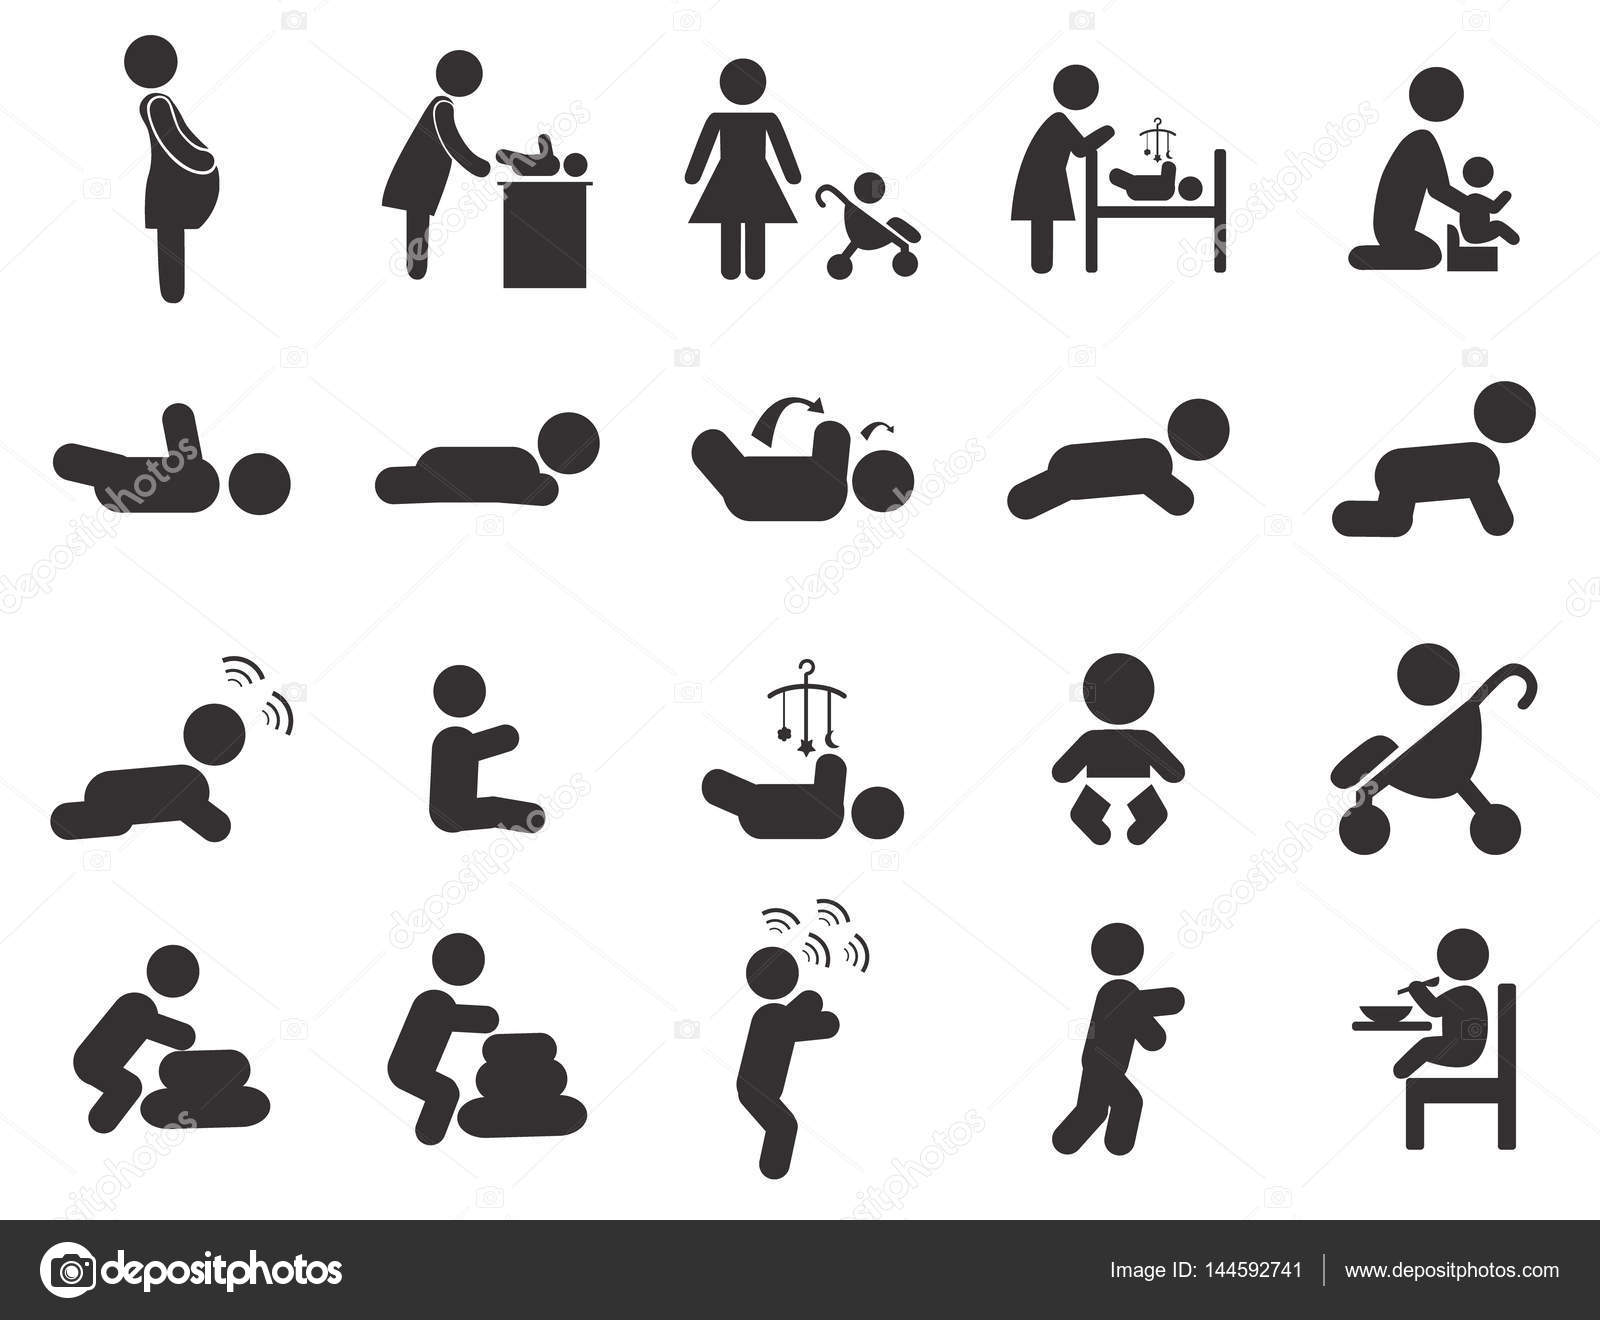 Baby Black Pictogram Pregnant Newborn Simple Icon